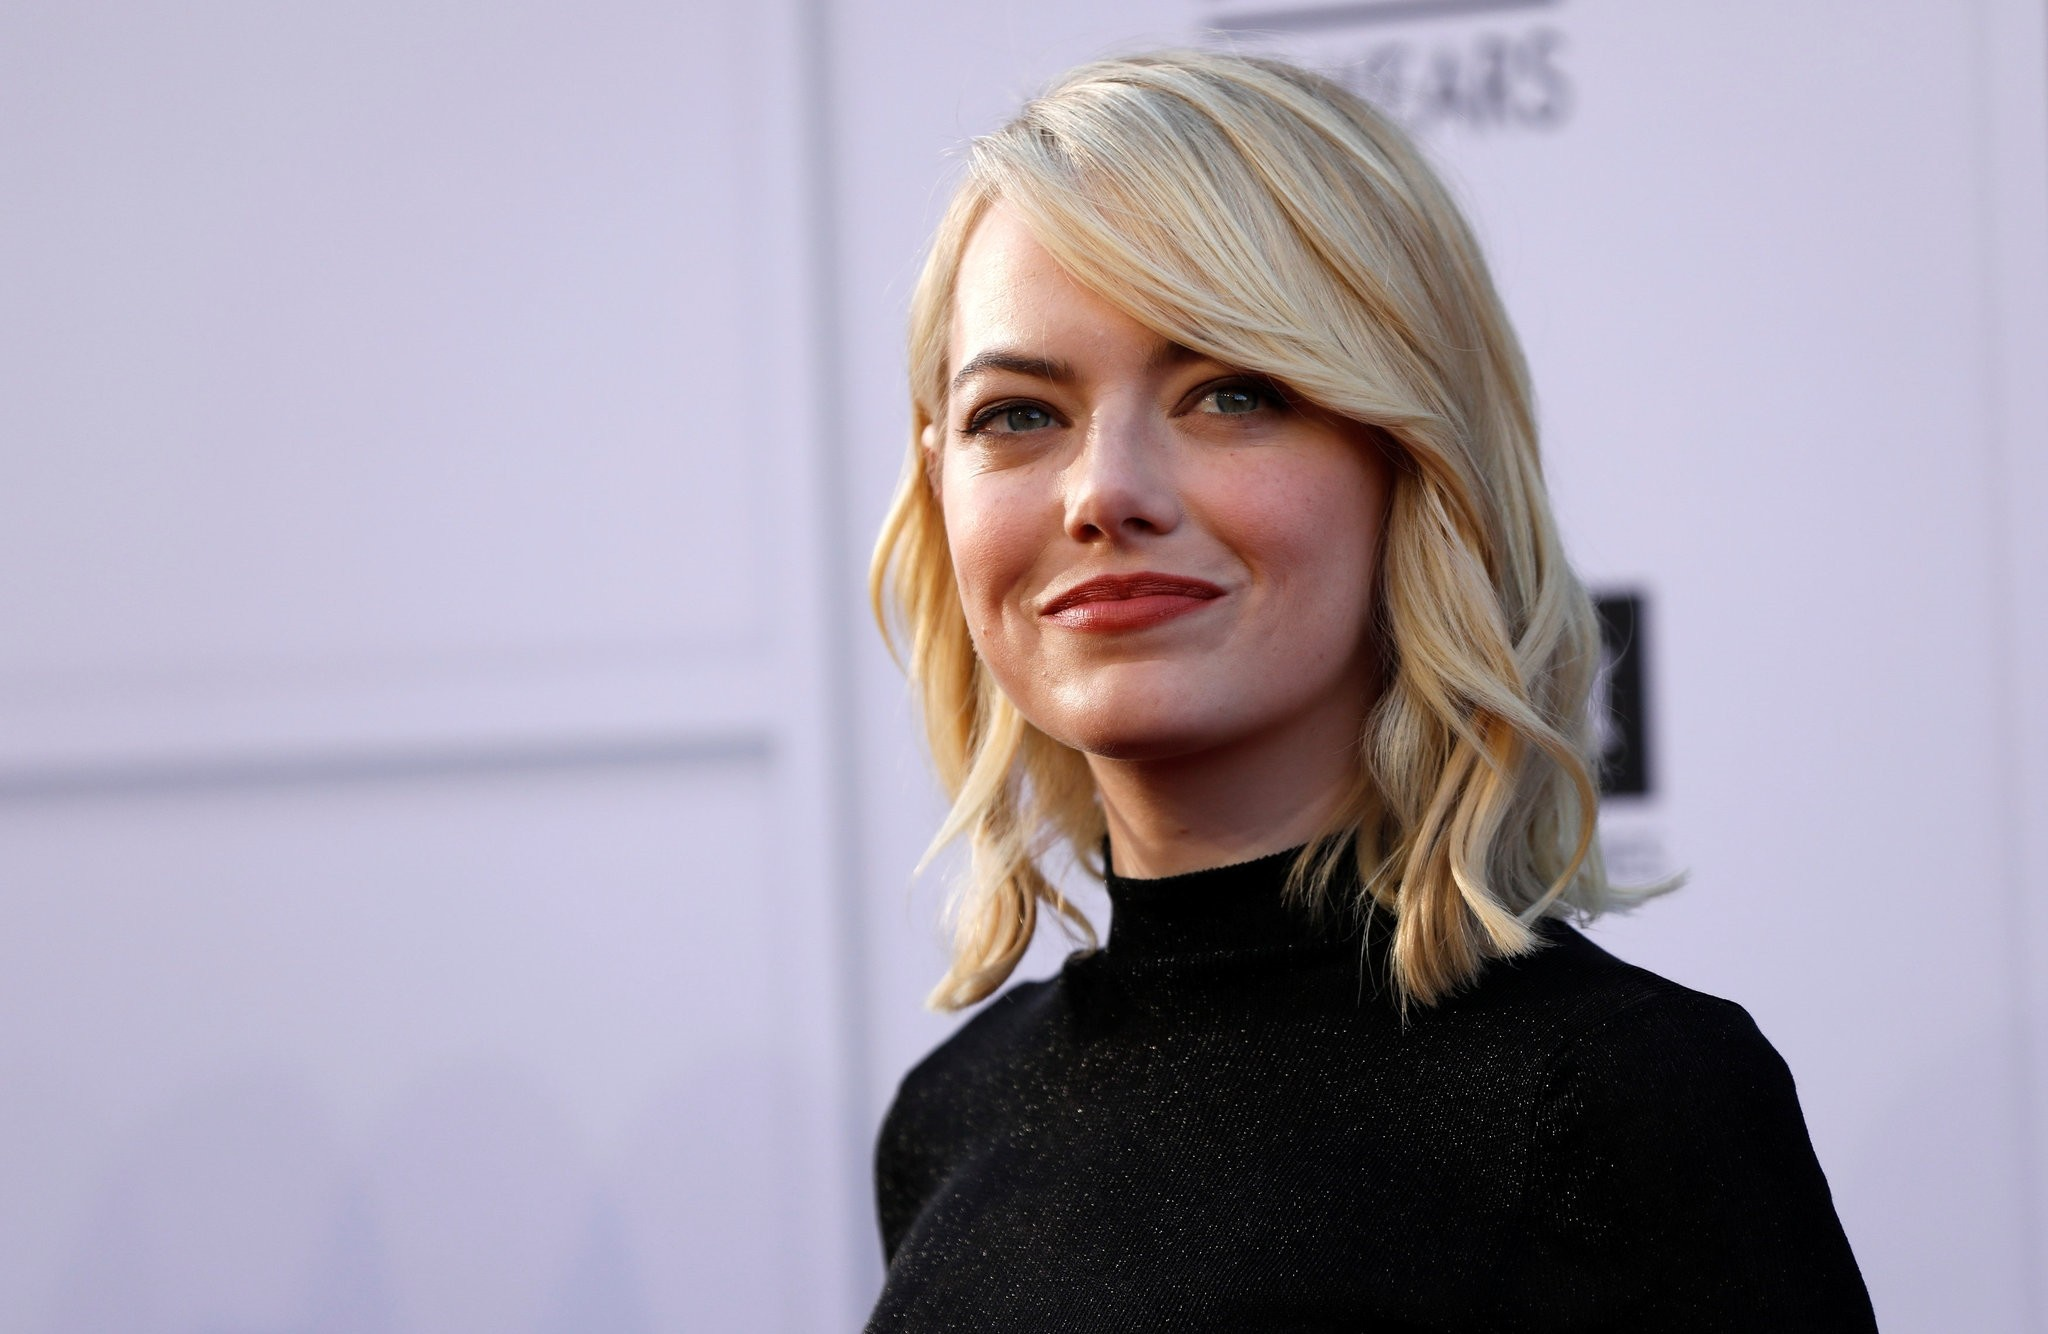 Actress Emma Stone arrives at the 2017 American Film Institute Life Achievement Award in Los Angeles, on August 6, 2017. (REUTERS Photo)